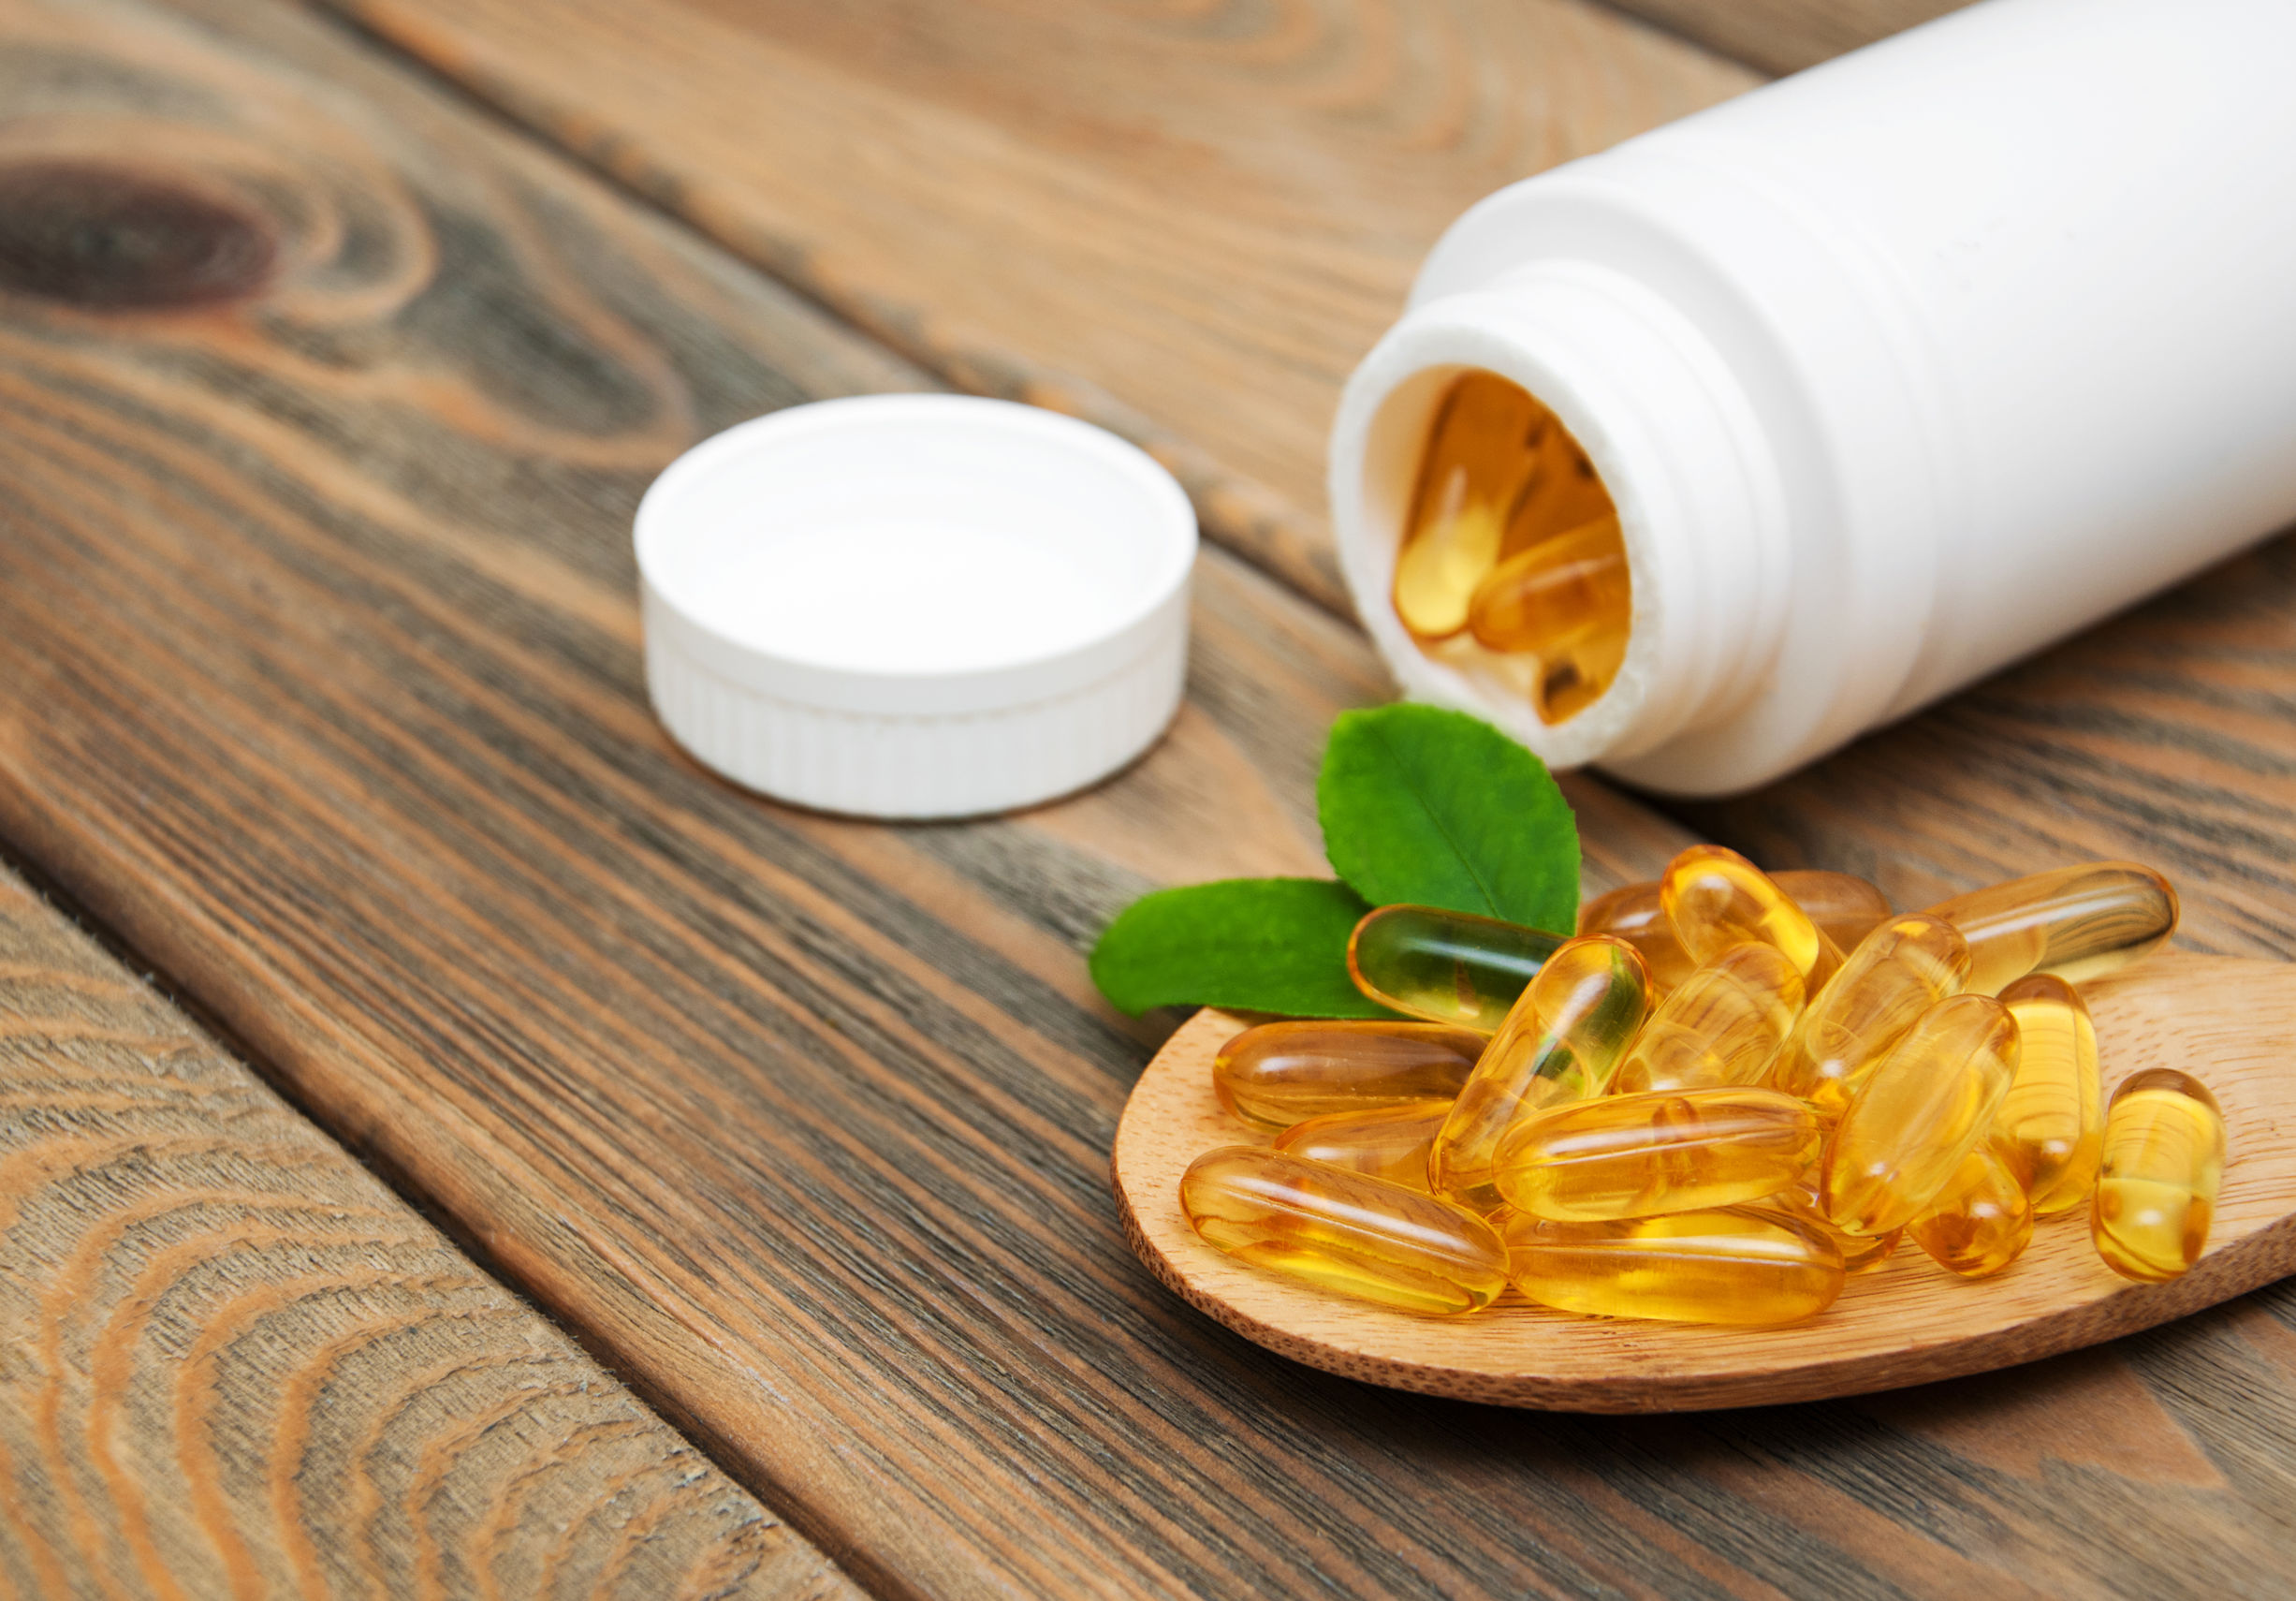 Best Vitamin D3 Supplement 2021: Shopping Guide & Review